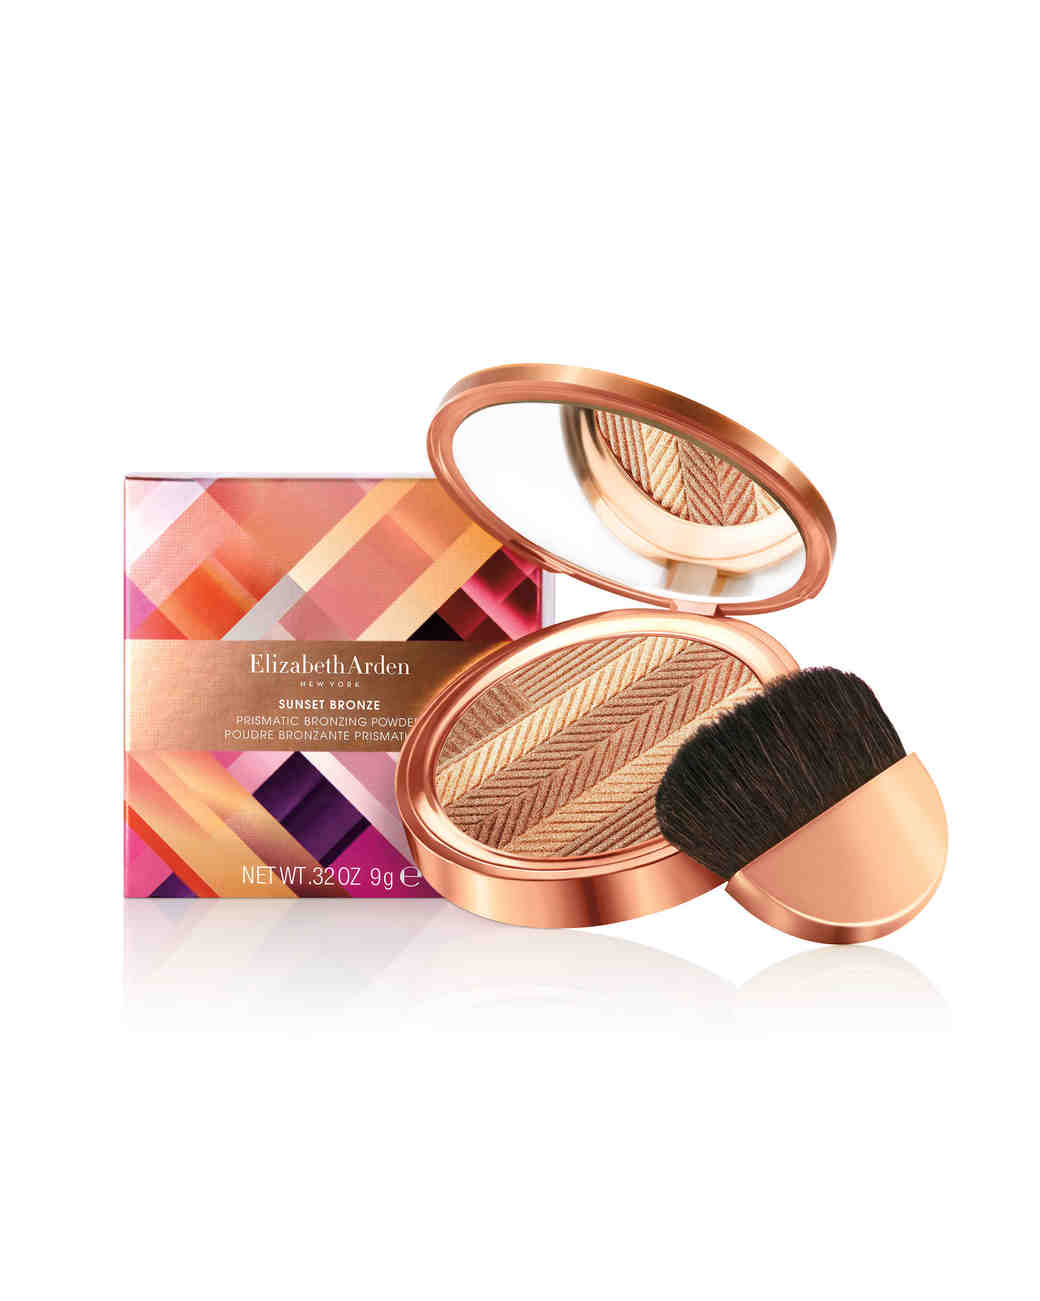 Elizabeth Arden Sunset Bronze Prismatic powder